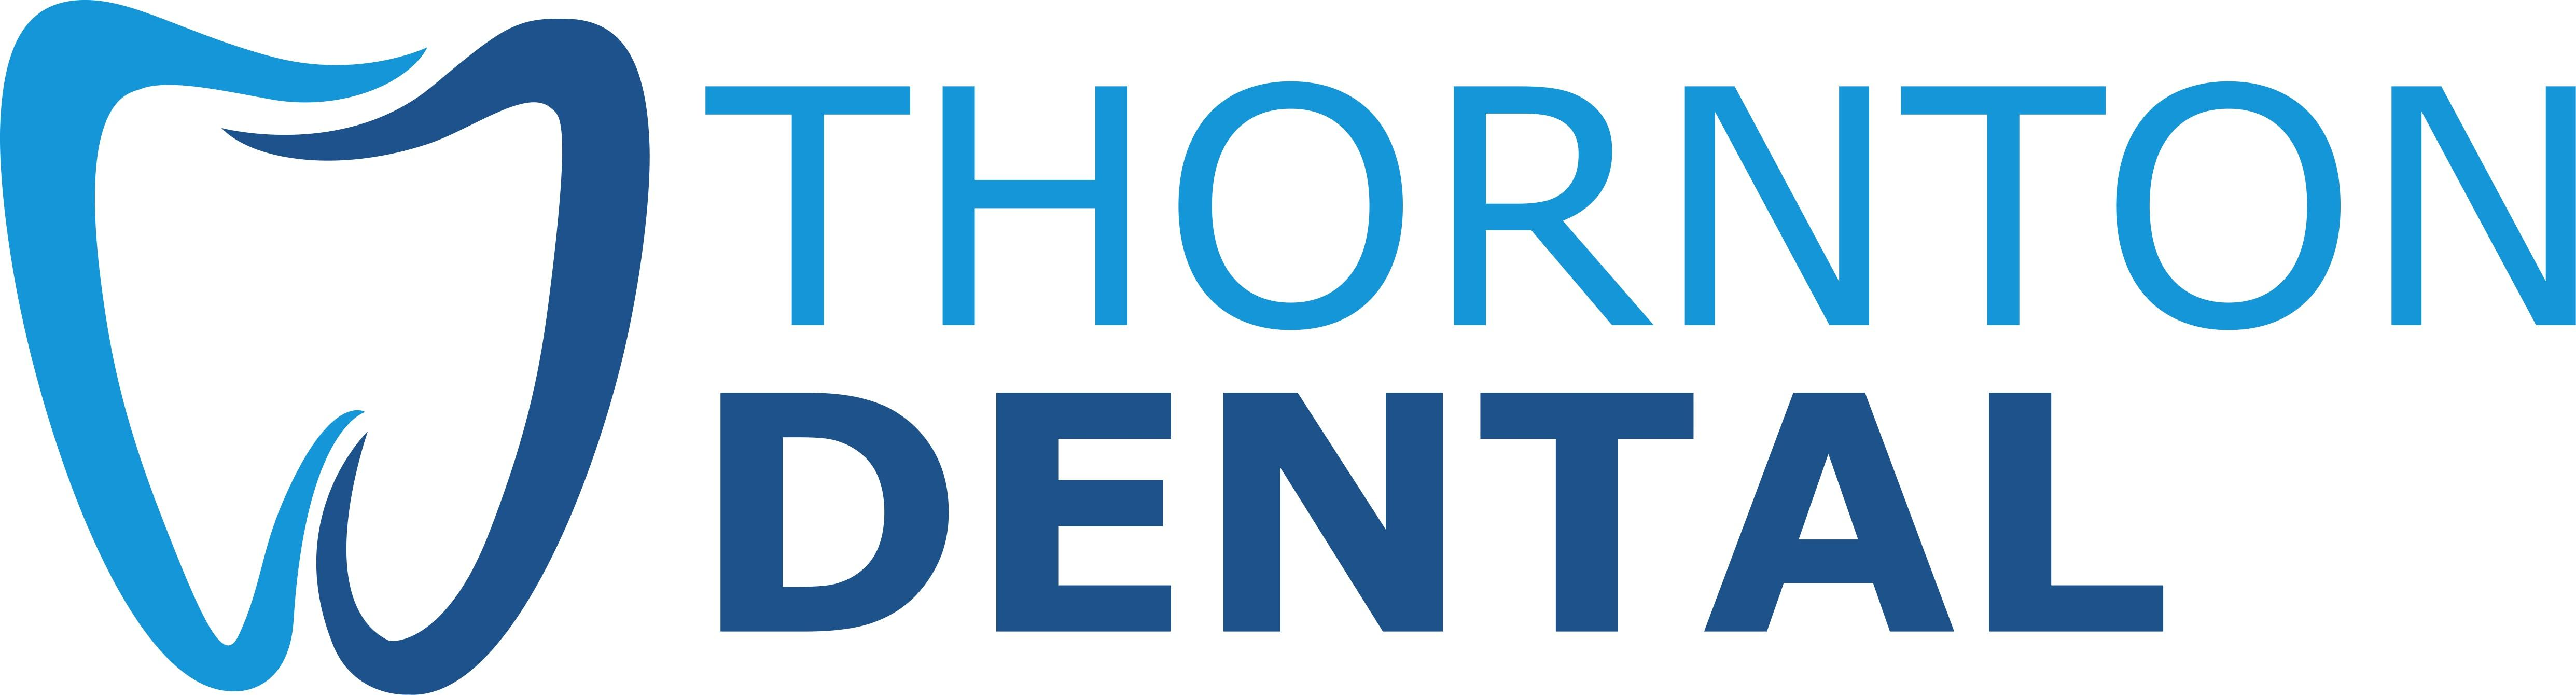 Thornton Dental Logo 20171012.jpg